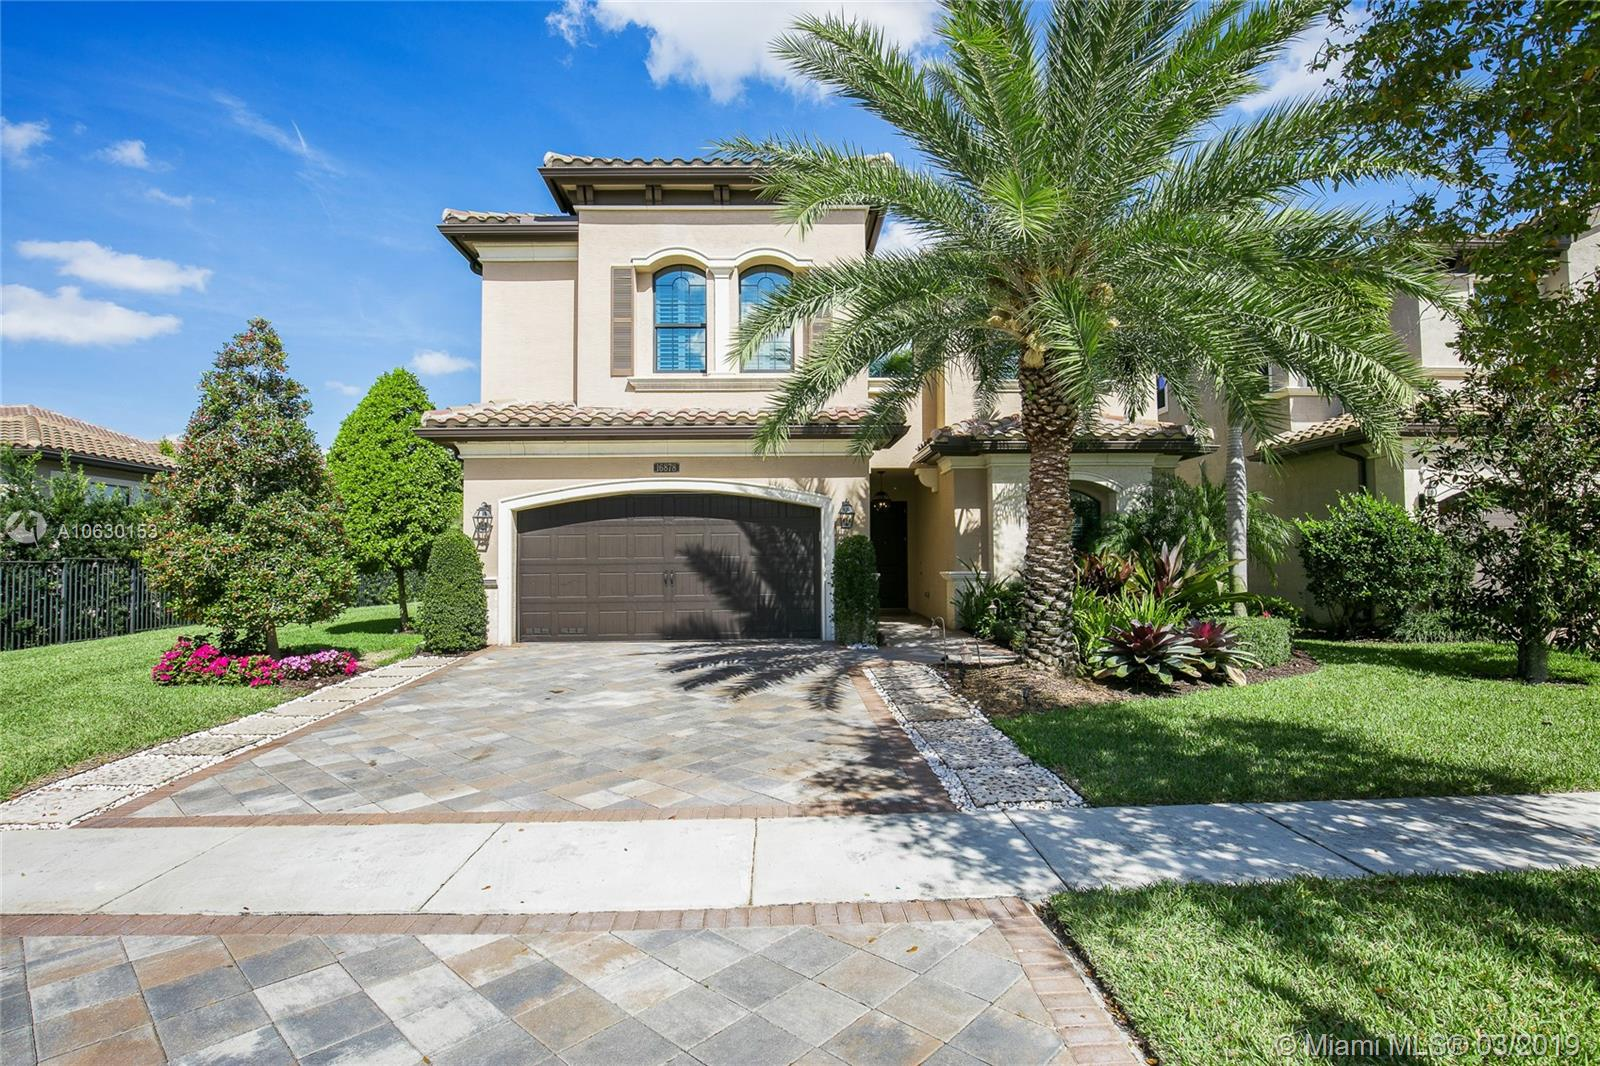 16878 Bridge Crossing Cir, Delray Beach, FL 33446 - Delray Beach, FL real estate listing